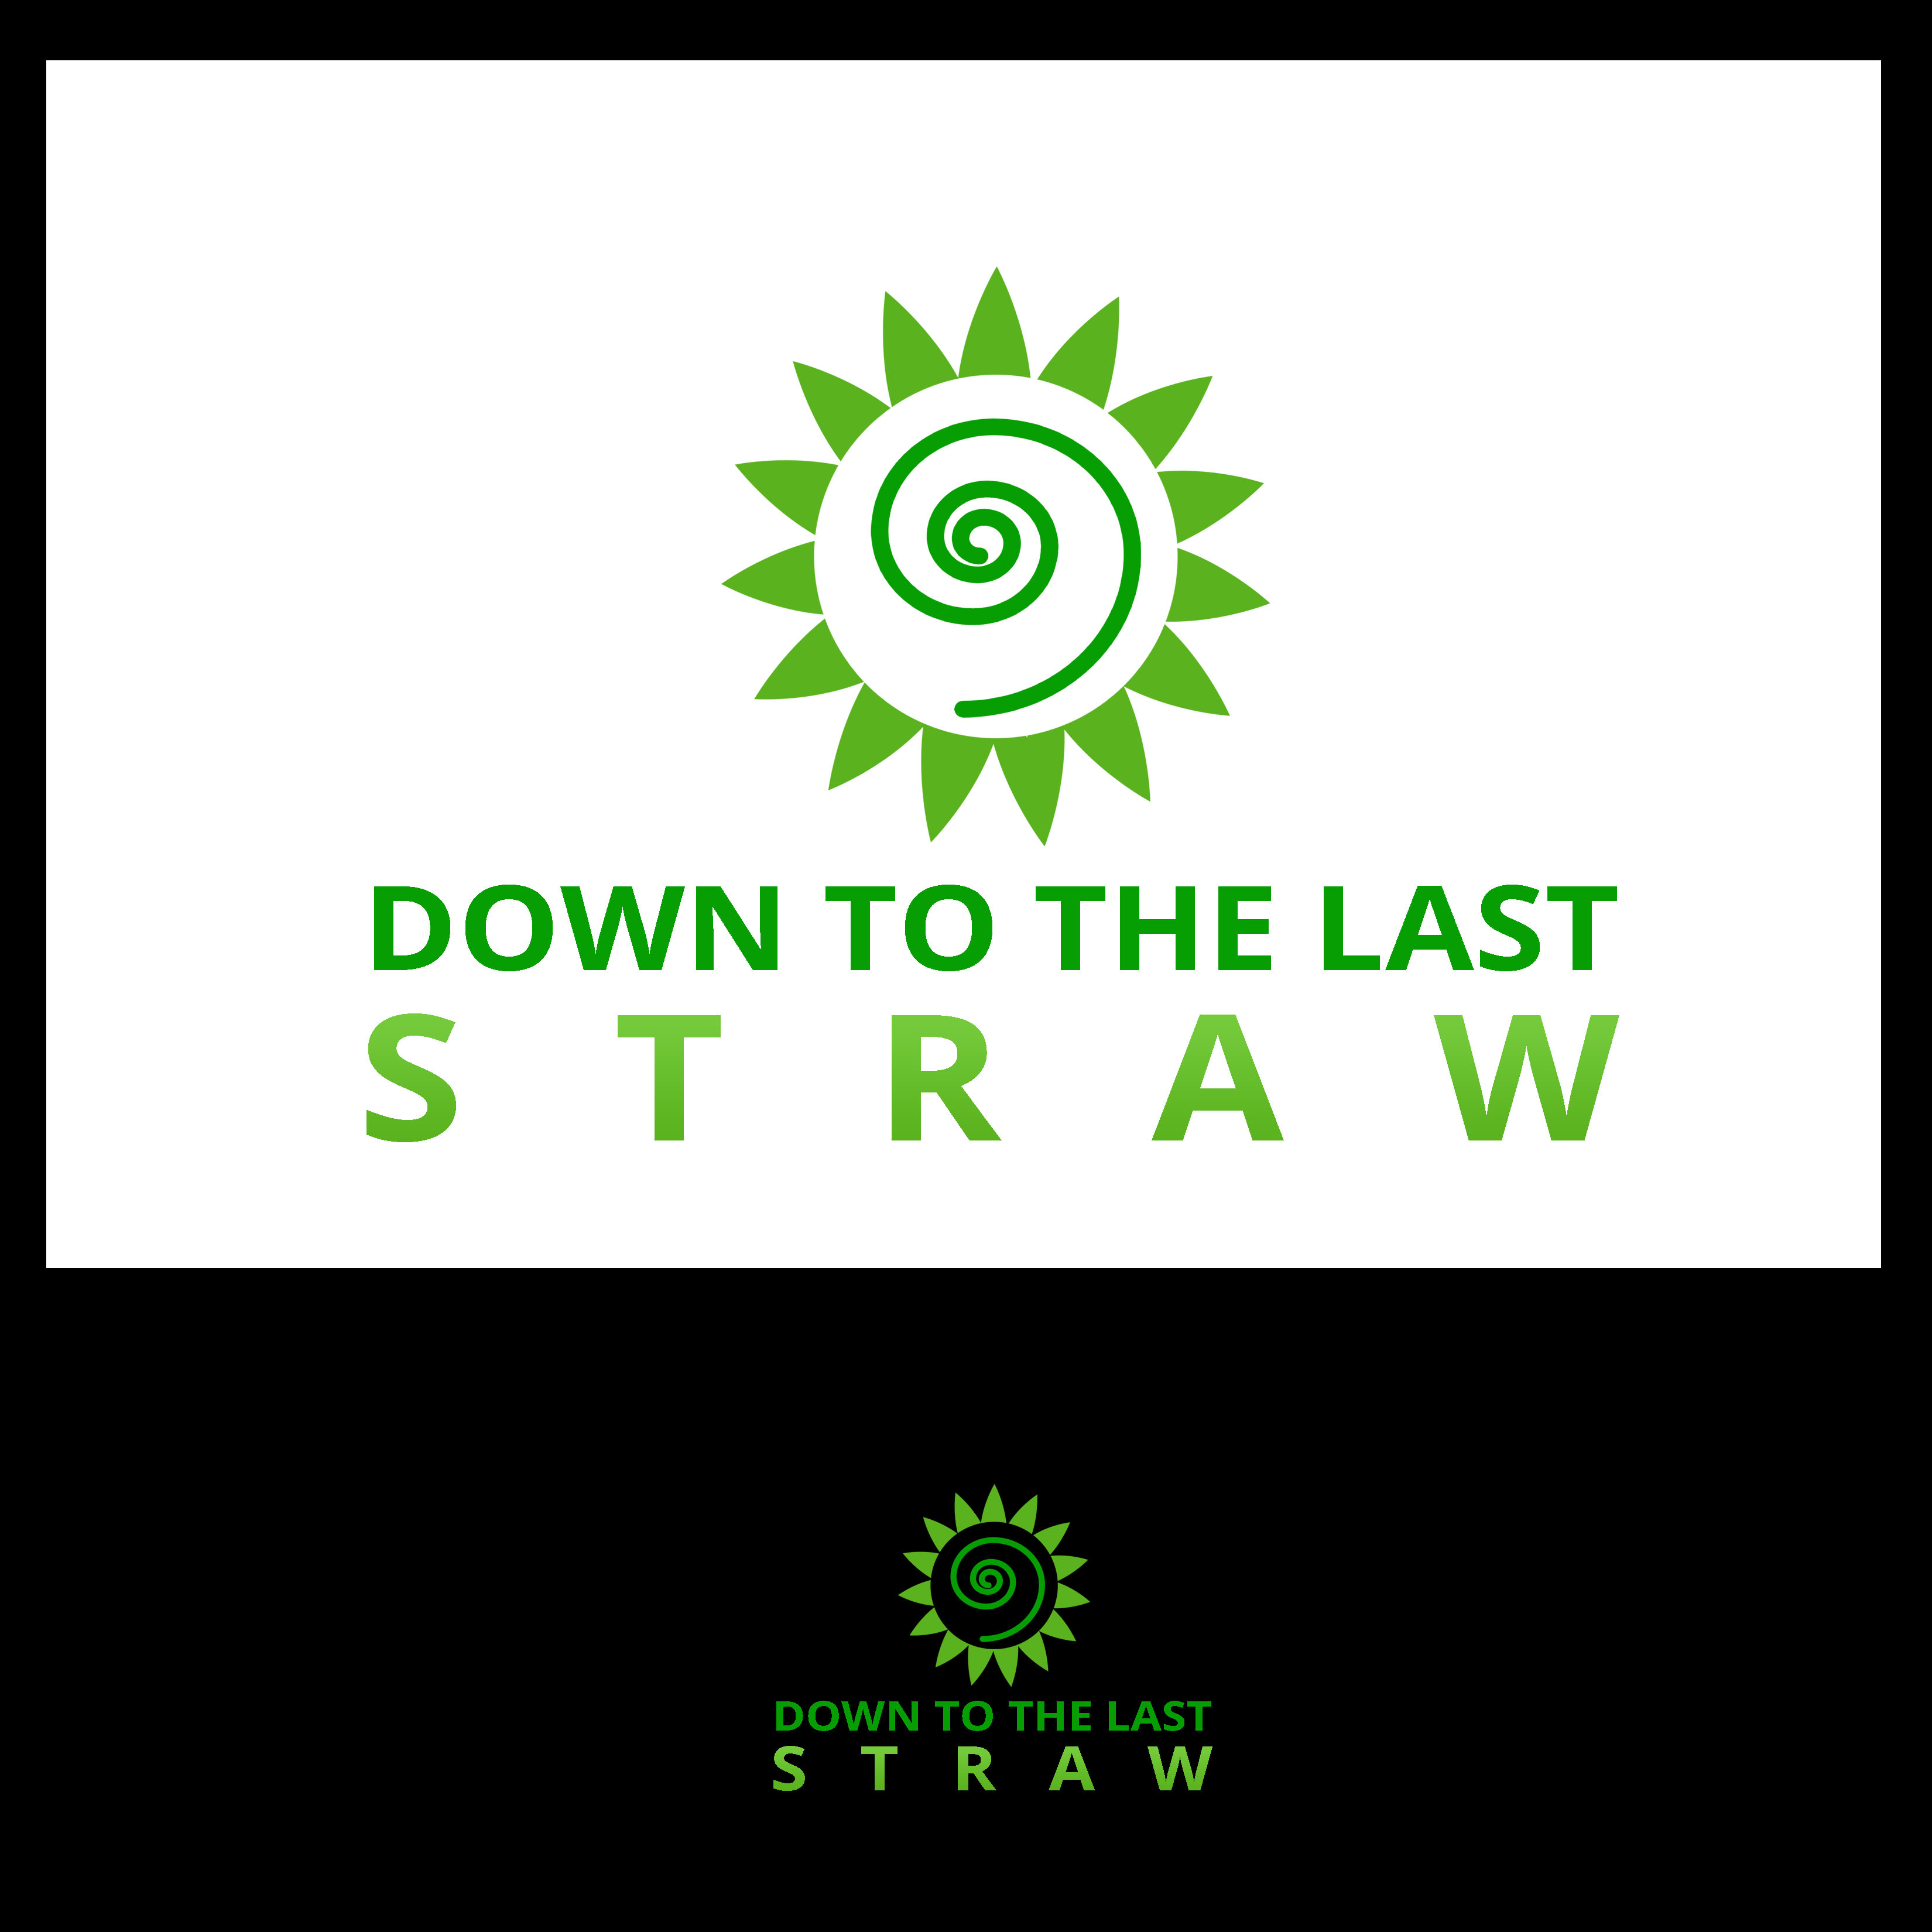 Logo Design by Allan Esclamado - Entry No. 8 in the Logo Design Contest New Logo Design for DOWN TO THE LAST STRAW.